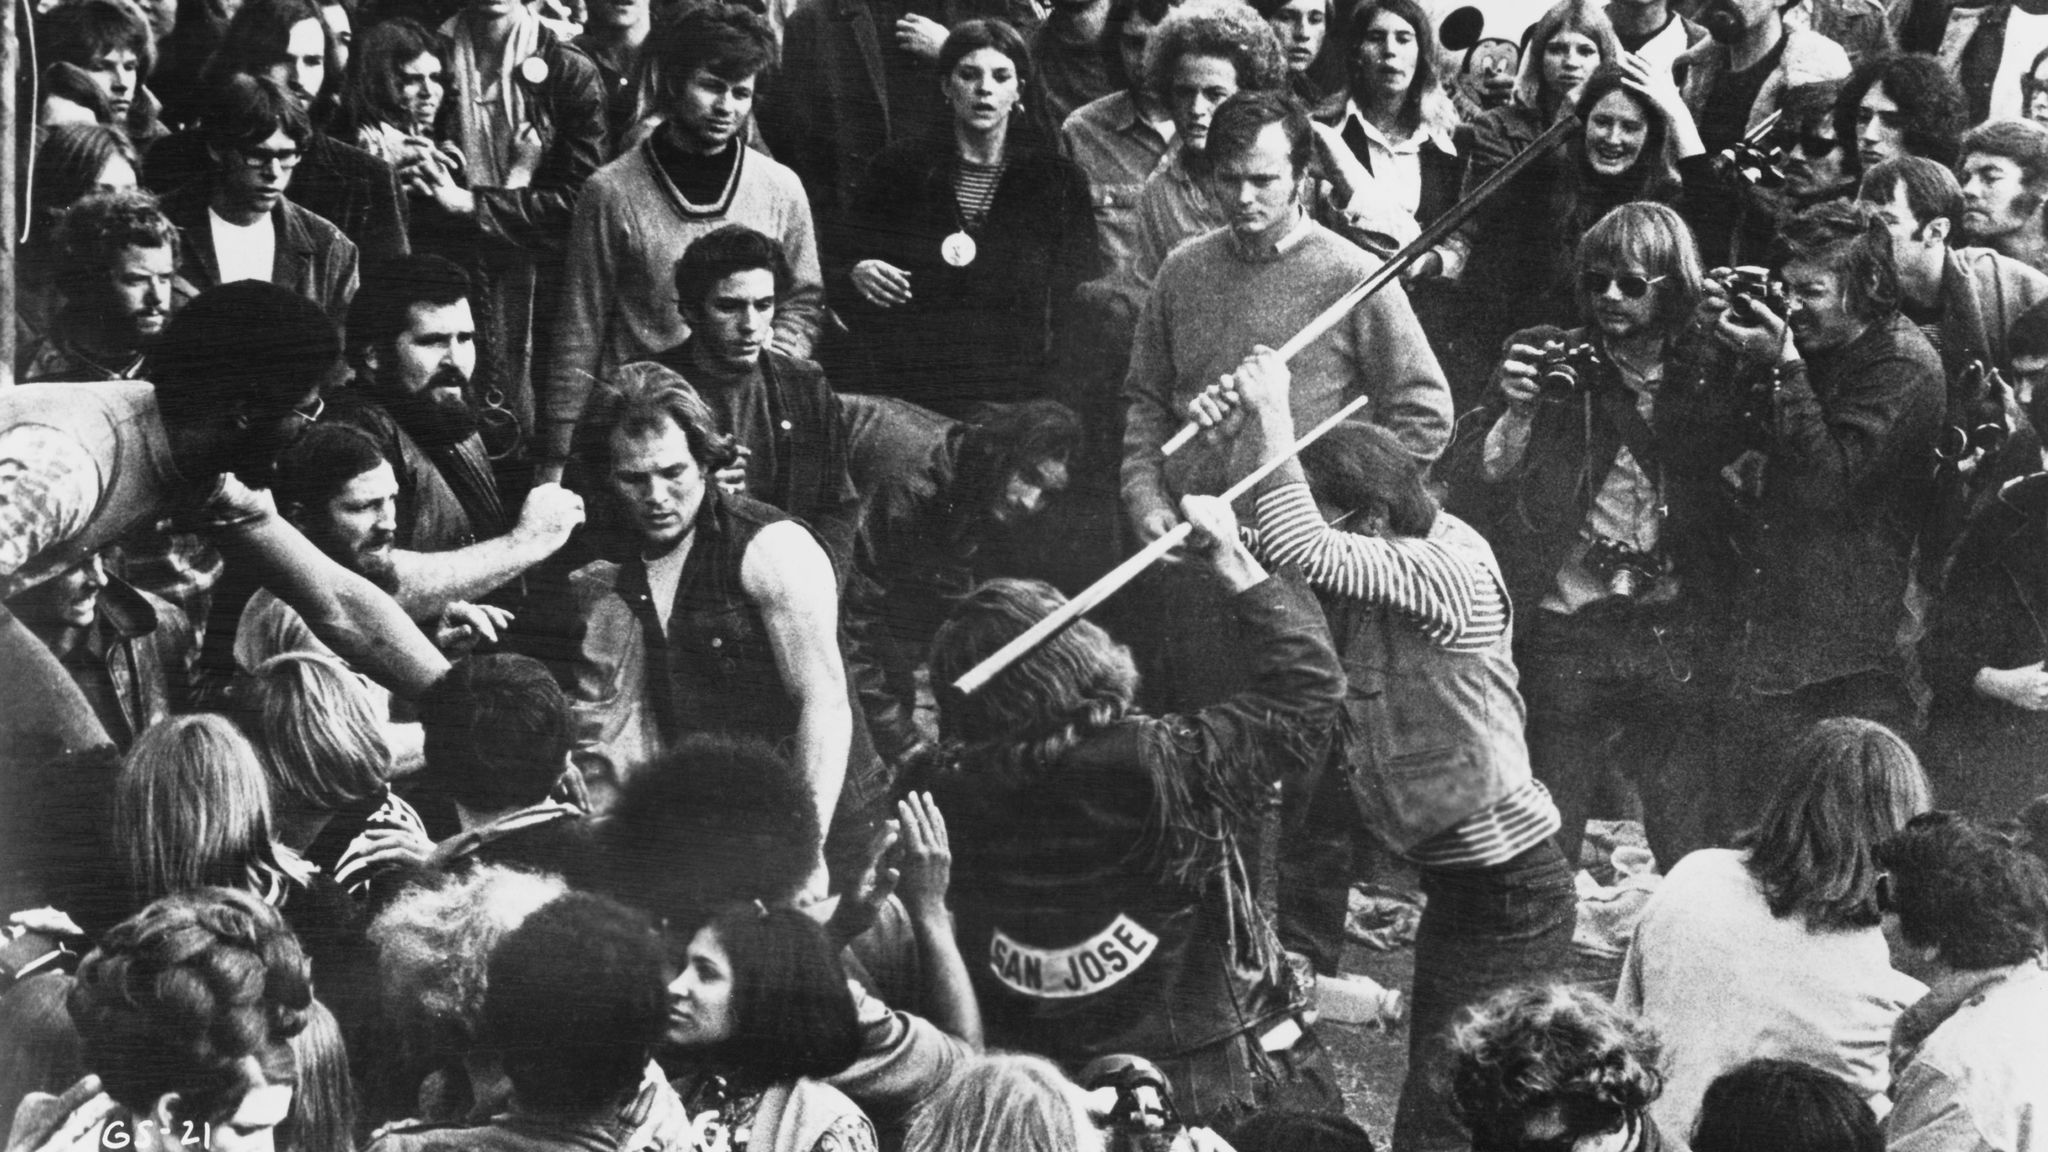 """A still from the documentary """"Gimme Shelter"""" shows the audience looking on as Hells Angels beat a fan with pool cues at the Altamont Free Concert in Northern California on Dec. 6, 1969."""